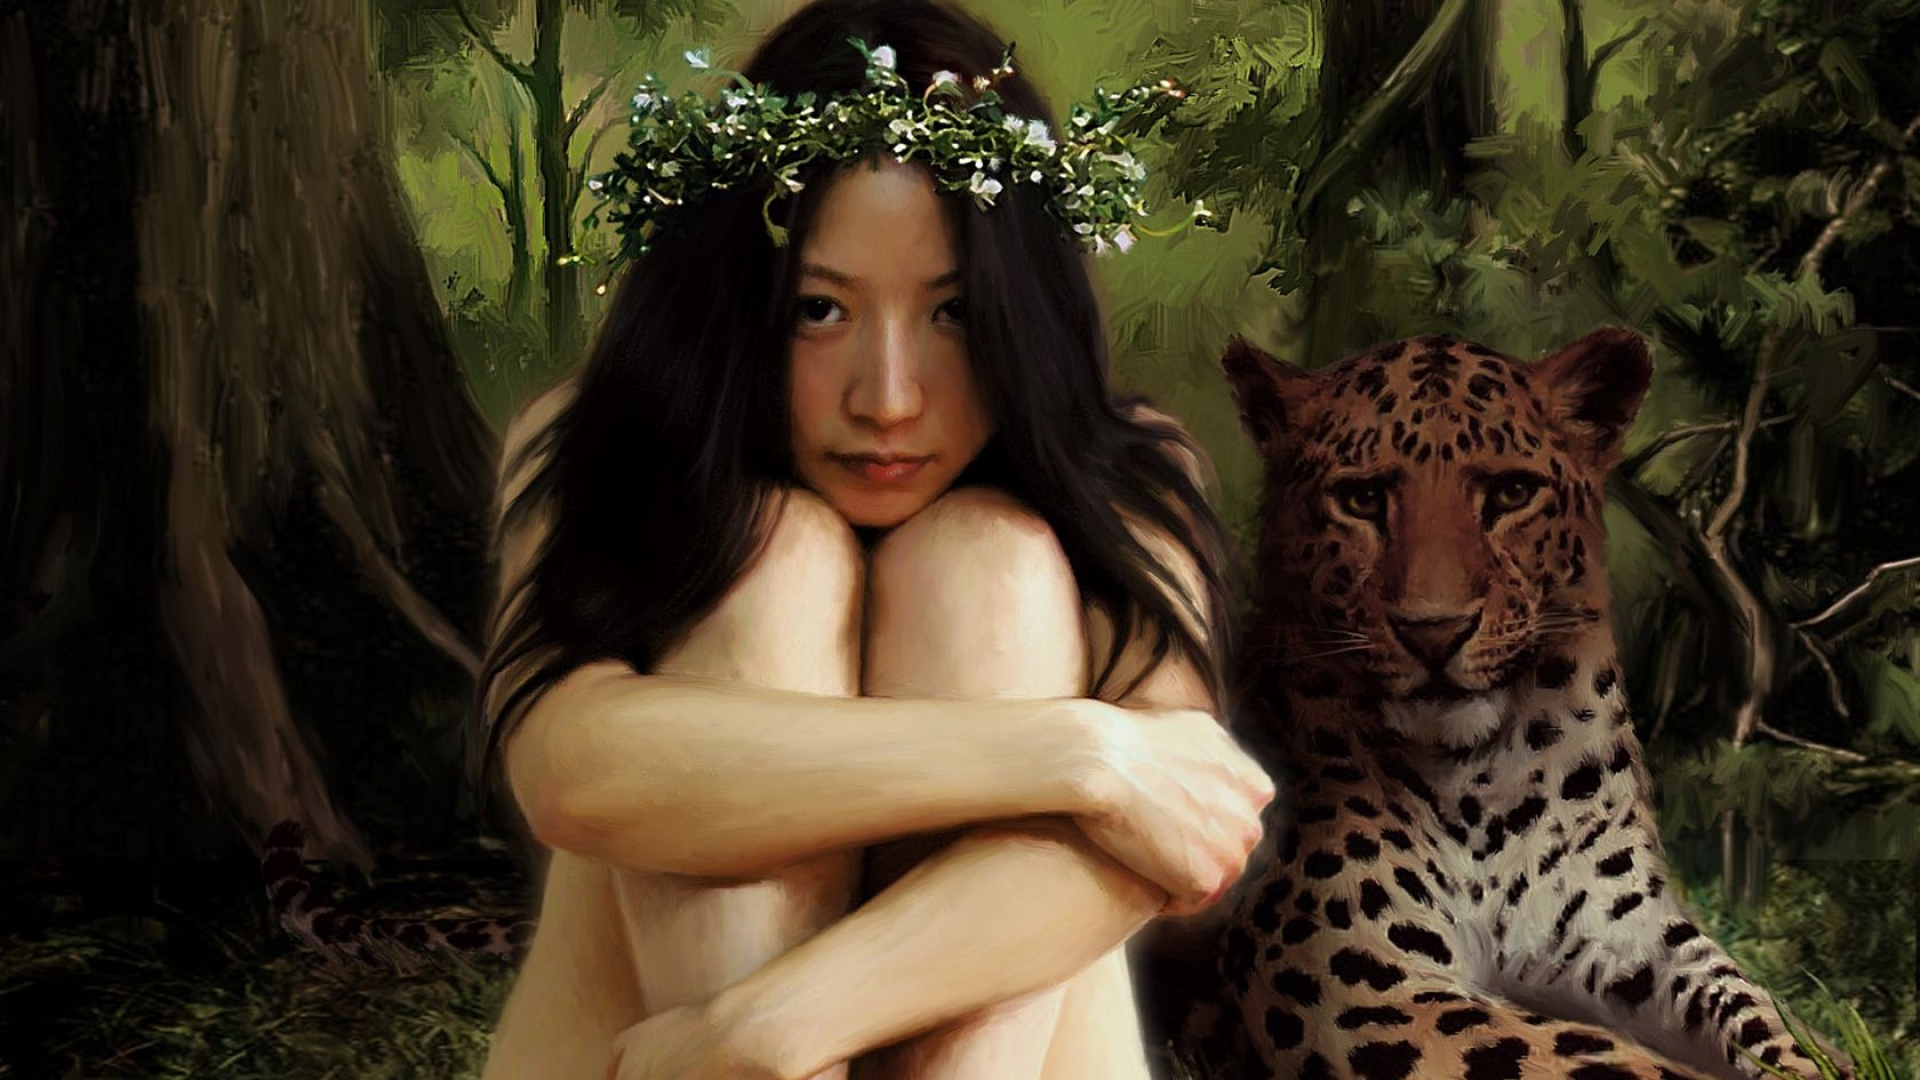 girl-wood-leopard-wreath-1920x1080